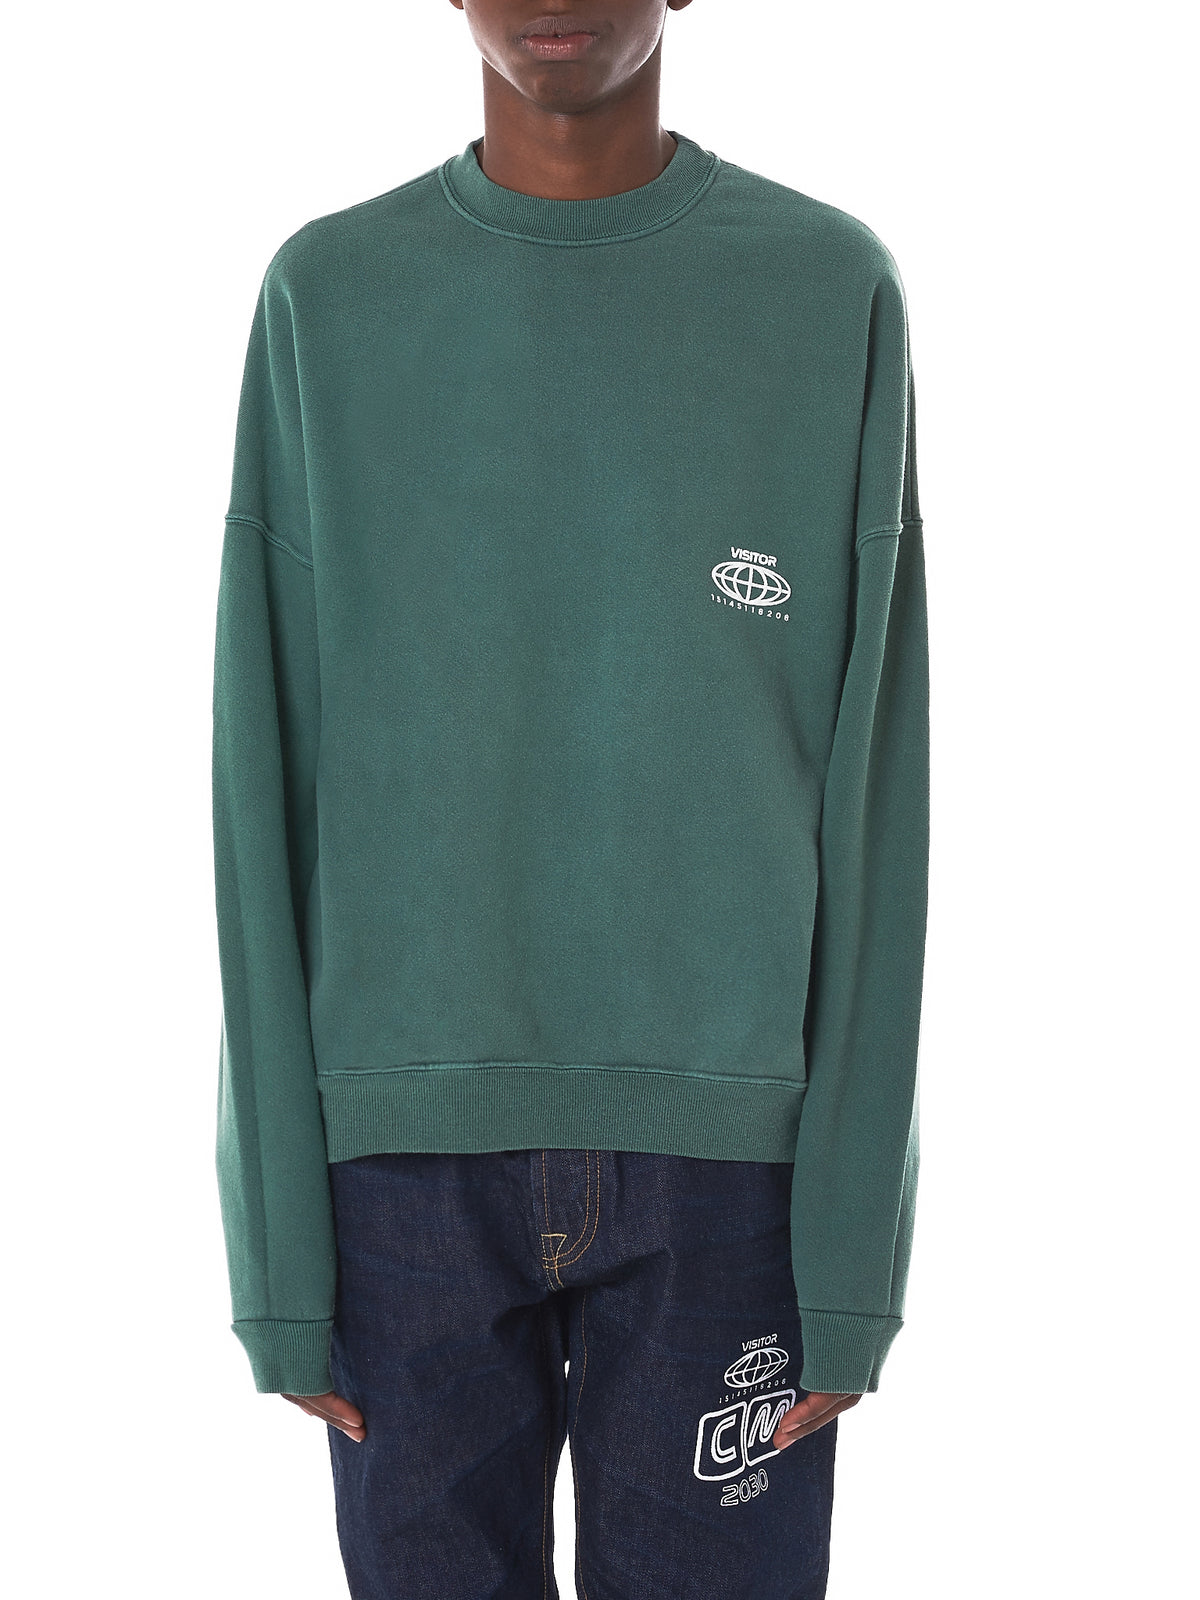 'VOE Enterprise' Crewneck Sweatshirt (VOE29-EARTH-GREEN)